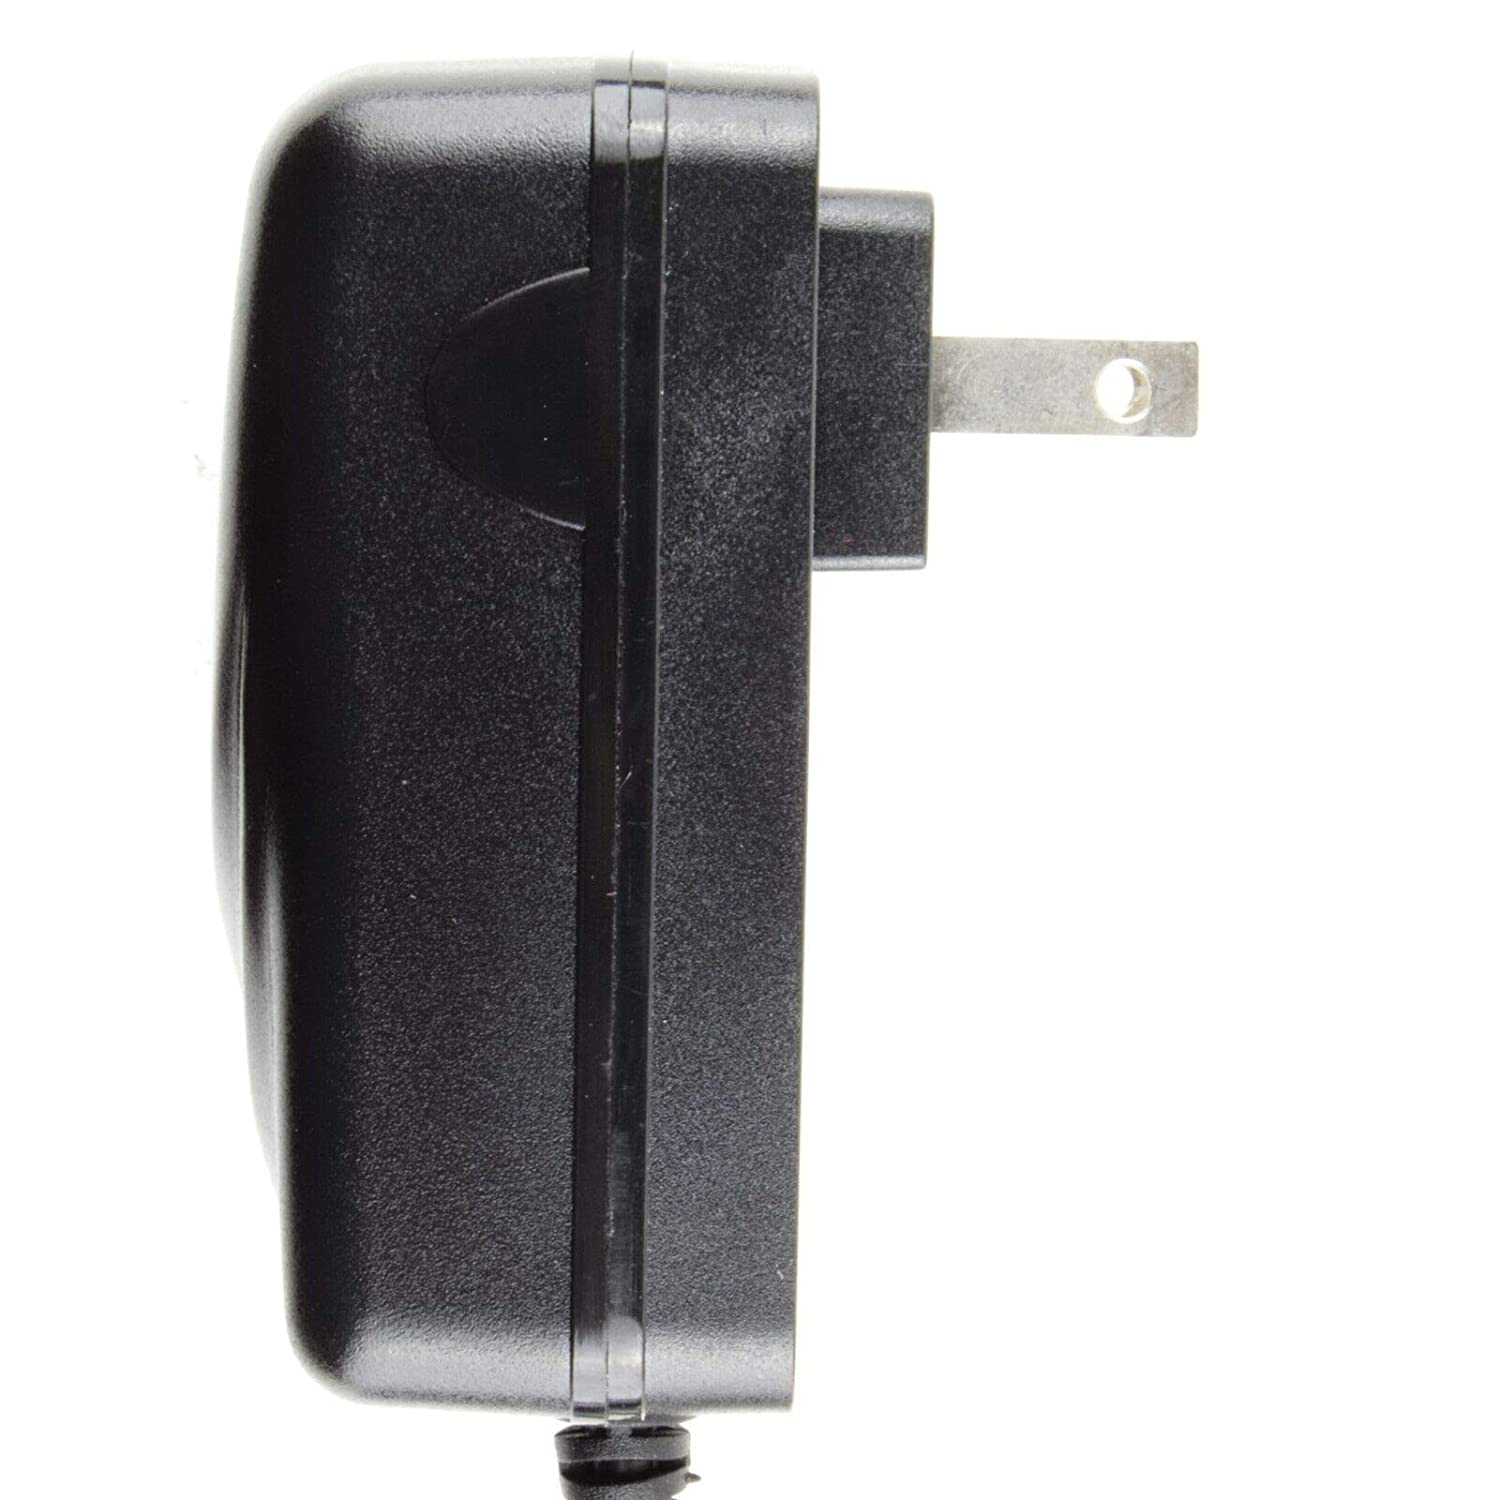 Amazon.com: MyVolts 12V Power Supply Adaptor Compatible with Yamaha YPG-235 Keyboard - US Plug: Musical Instruments